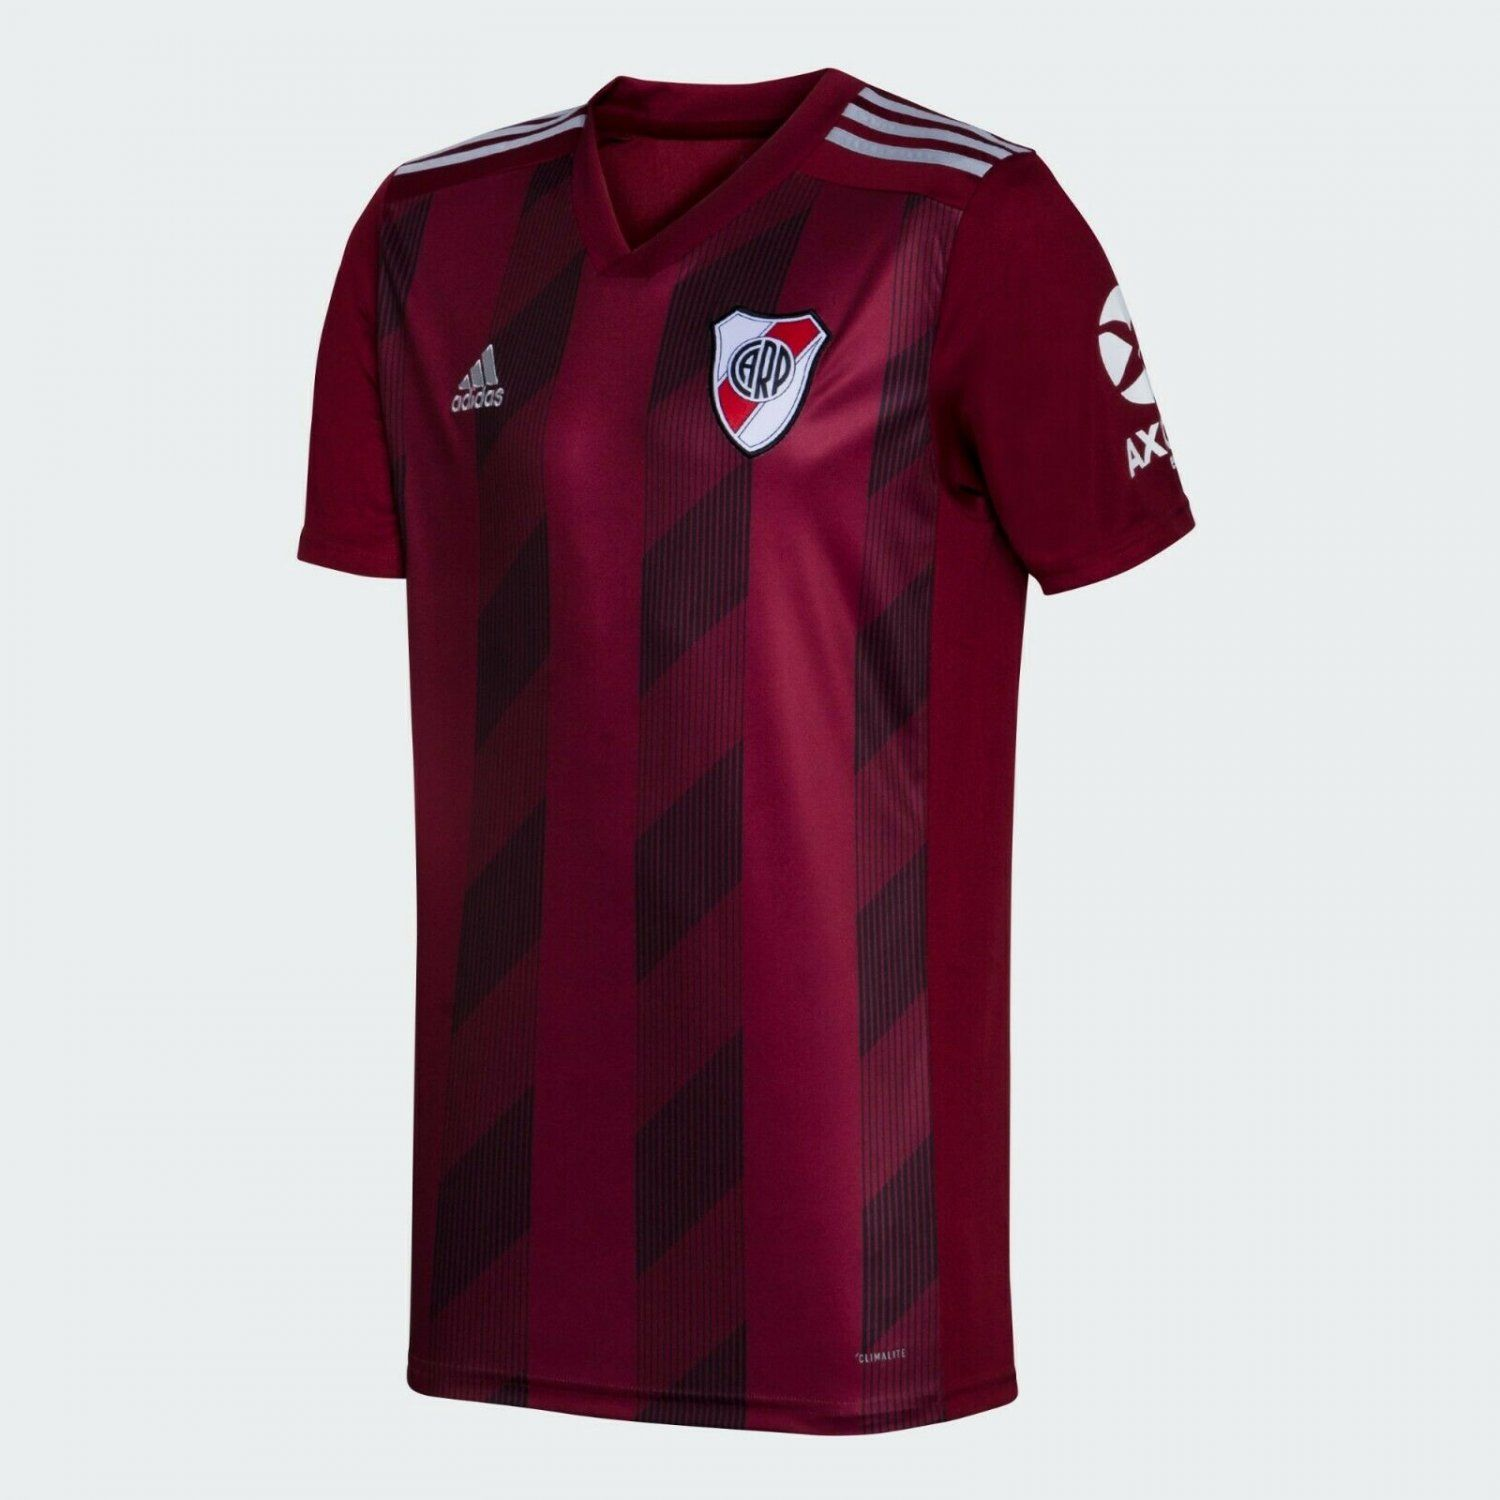 RIVER PLATE AWAY SOCCER JERSEY 2019